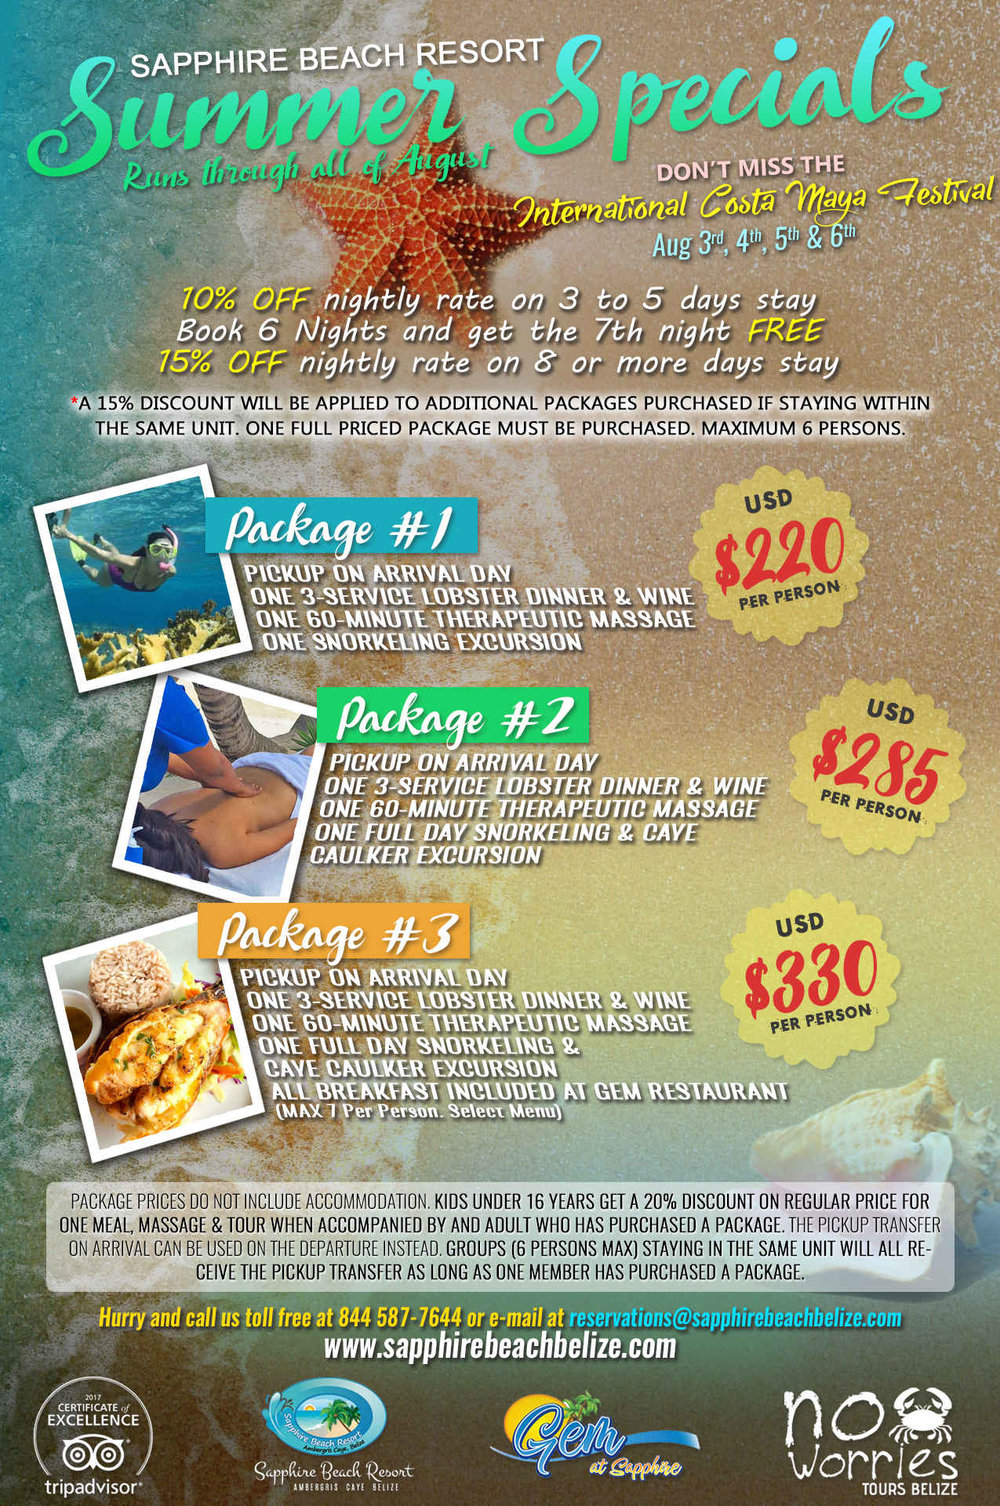 Costa Maya Sapphire Belize Vacation Specials.jpg